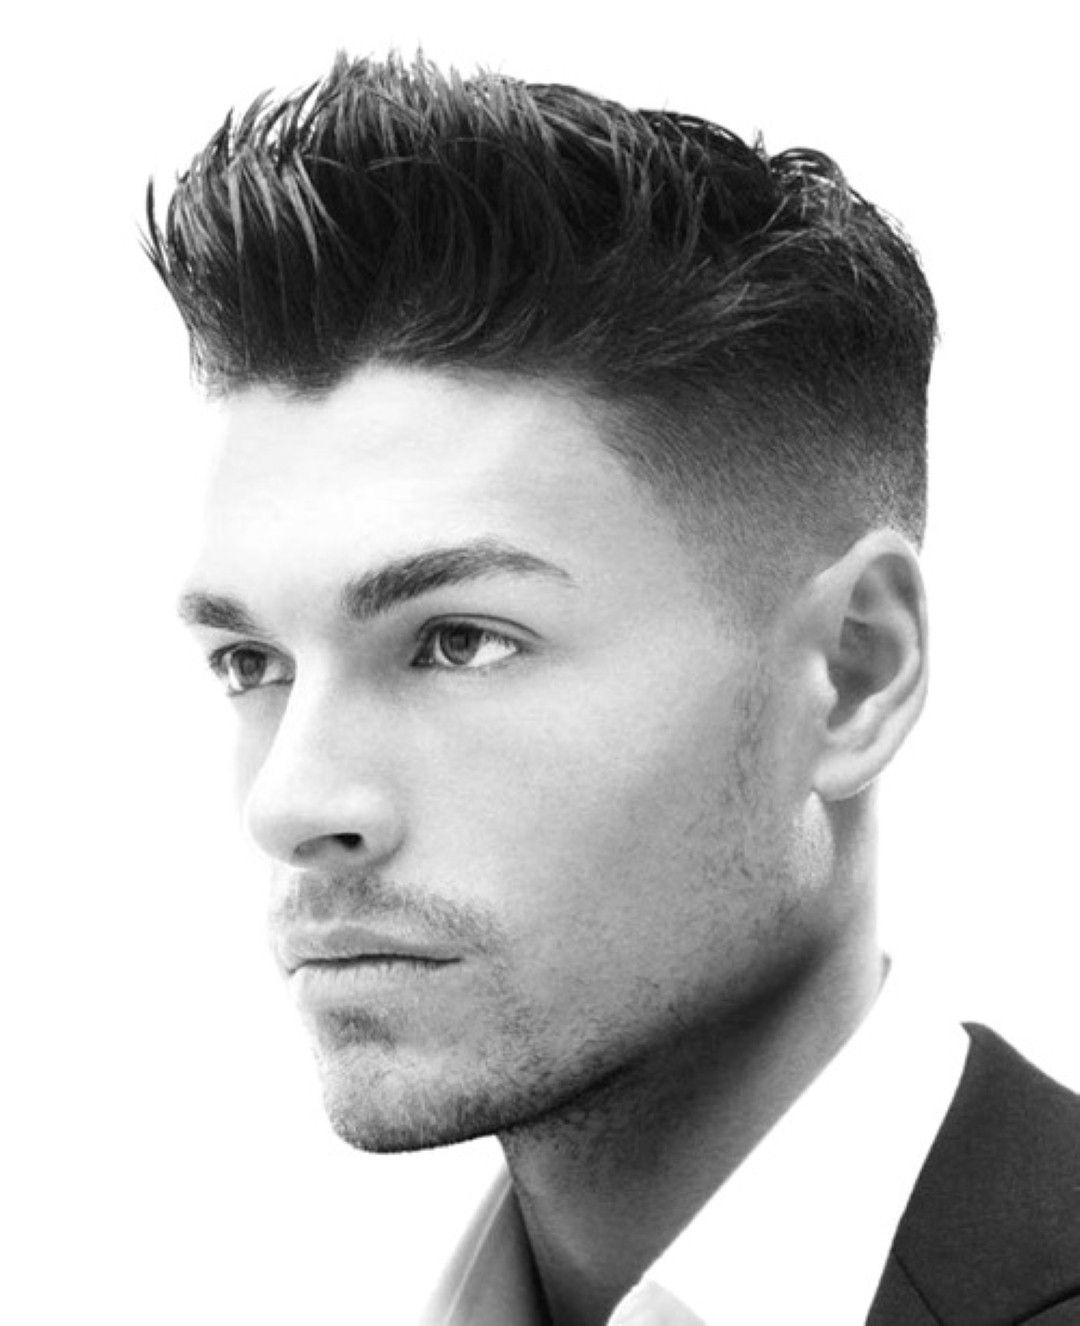 Hairstyles For Guys In   Simple Hairstyle Ideas For Women And - Straight hair styles for men